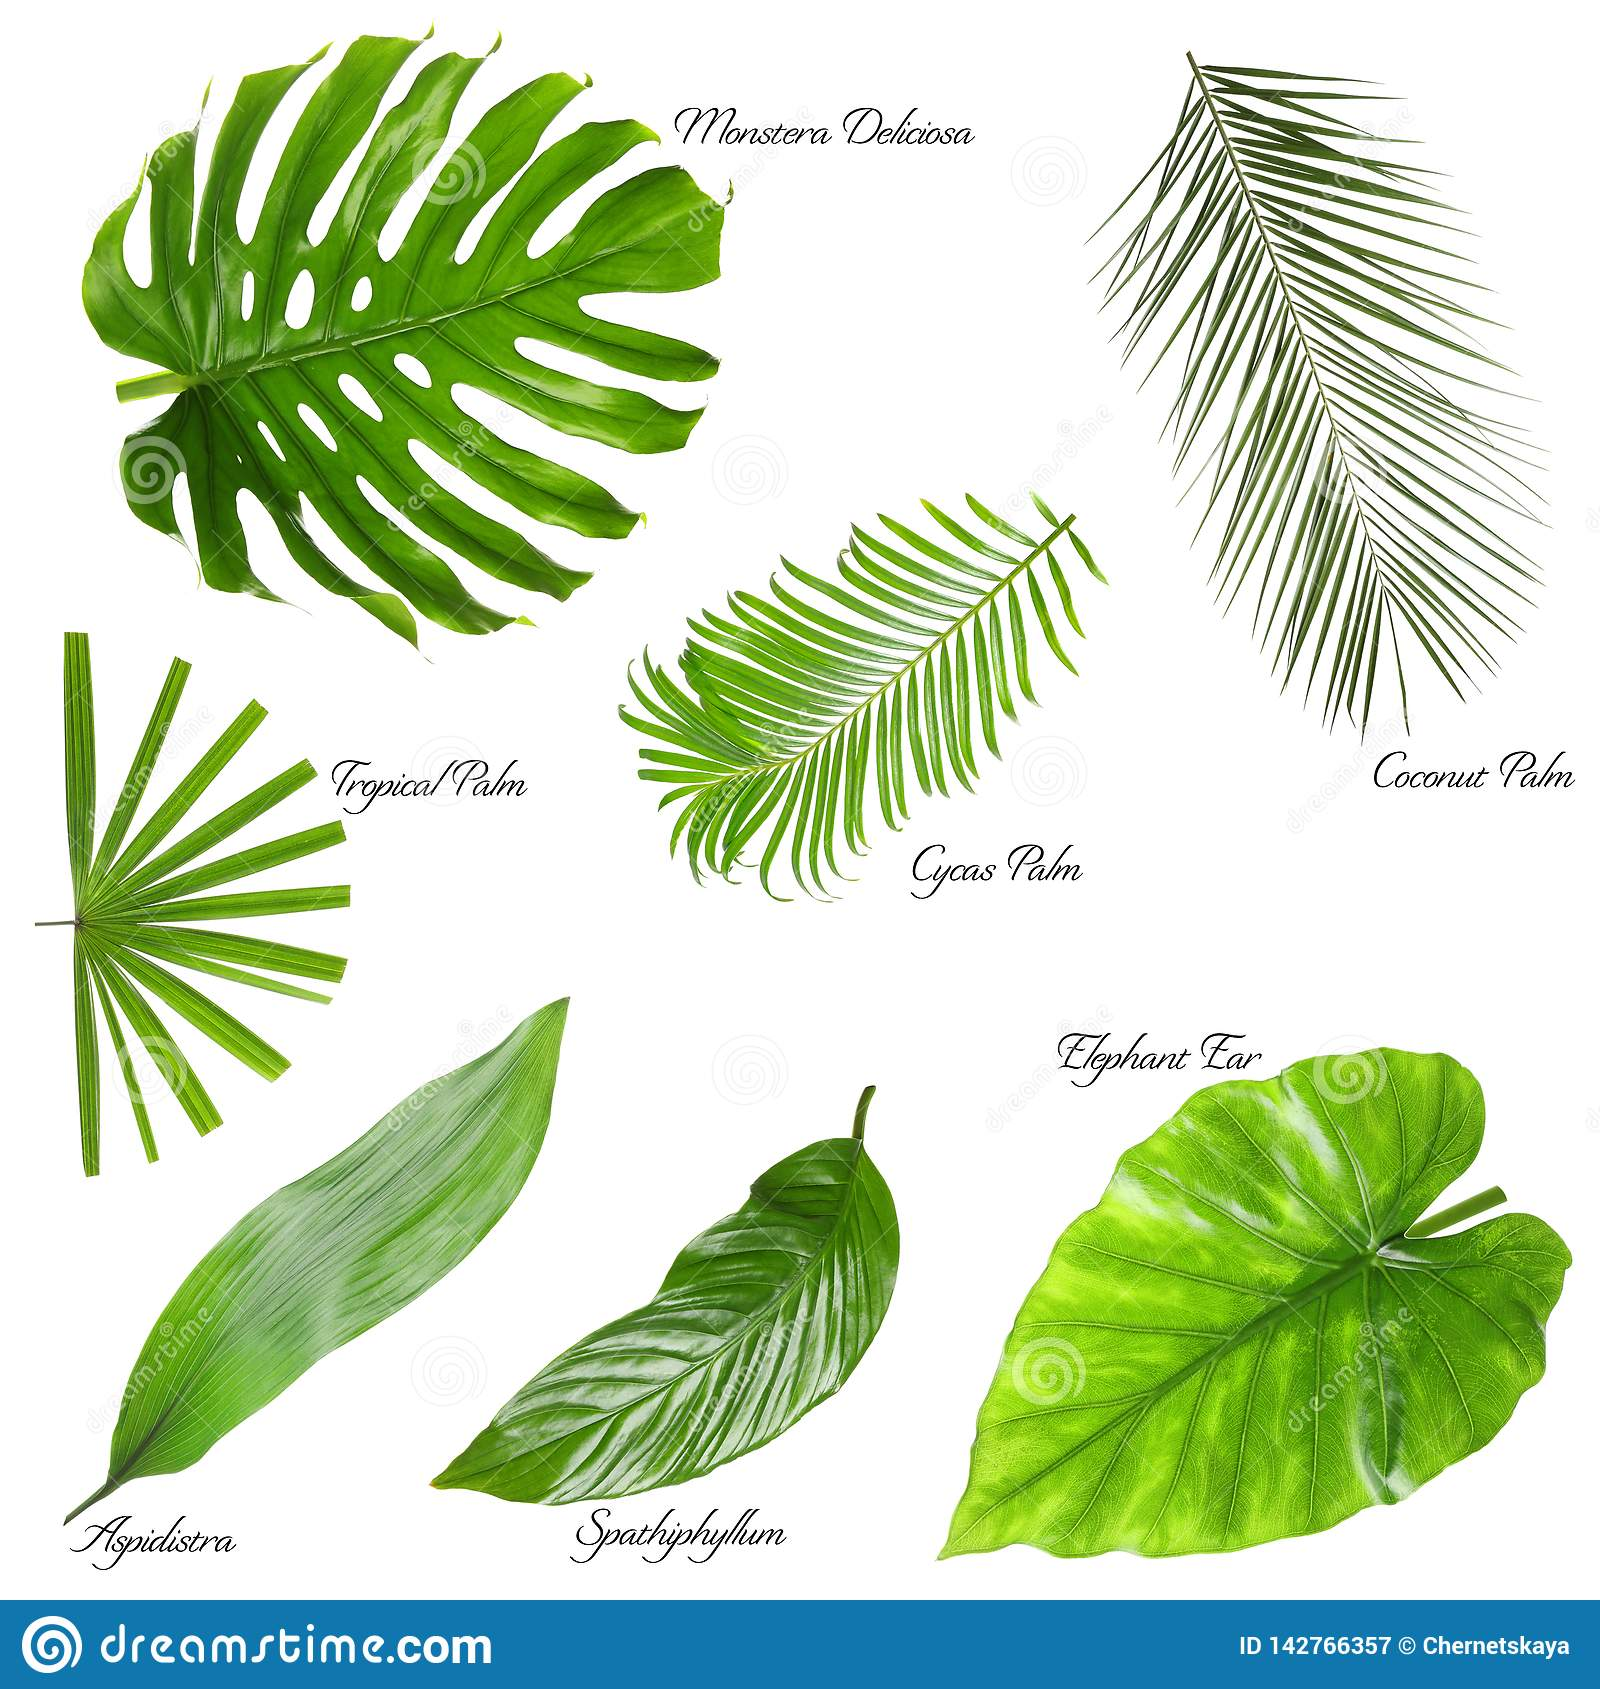 Set Of Different Tropical Leaves On White Stock Image Image Of Abstract Background 142766357 They are home to many resources, but deforestation could result in negative impacts. https www dreamstime com set different tropical leaves white background image142766357